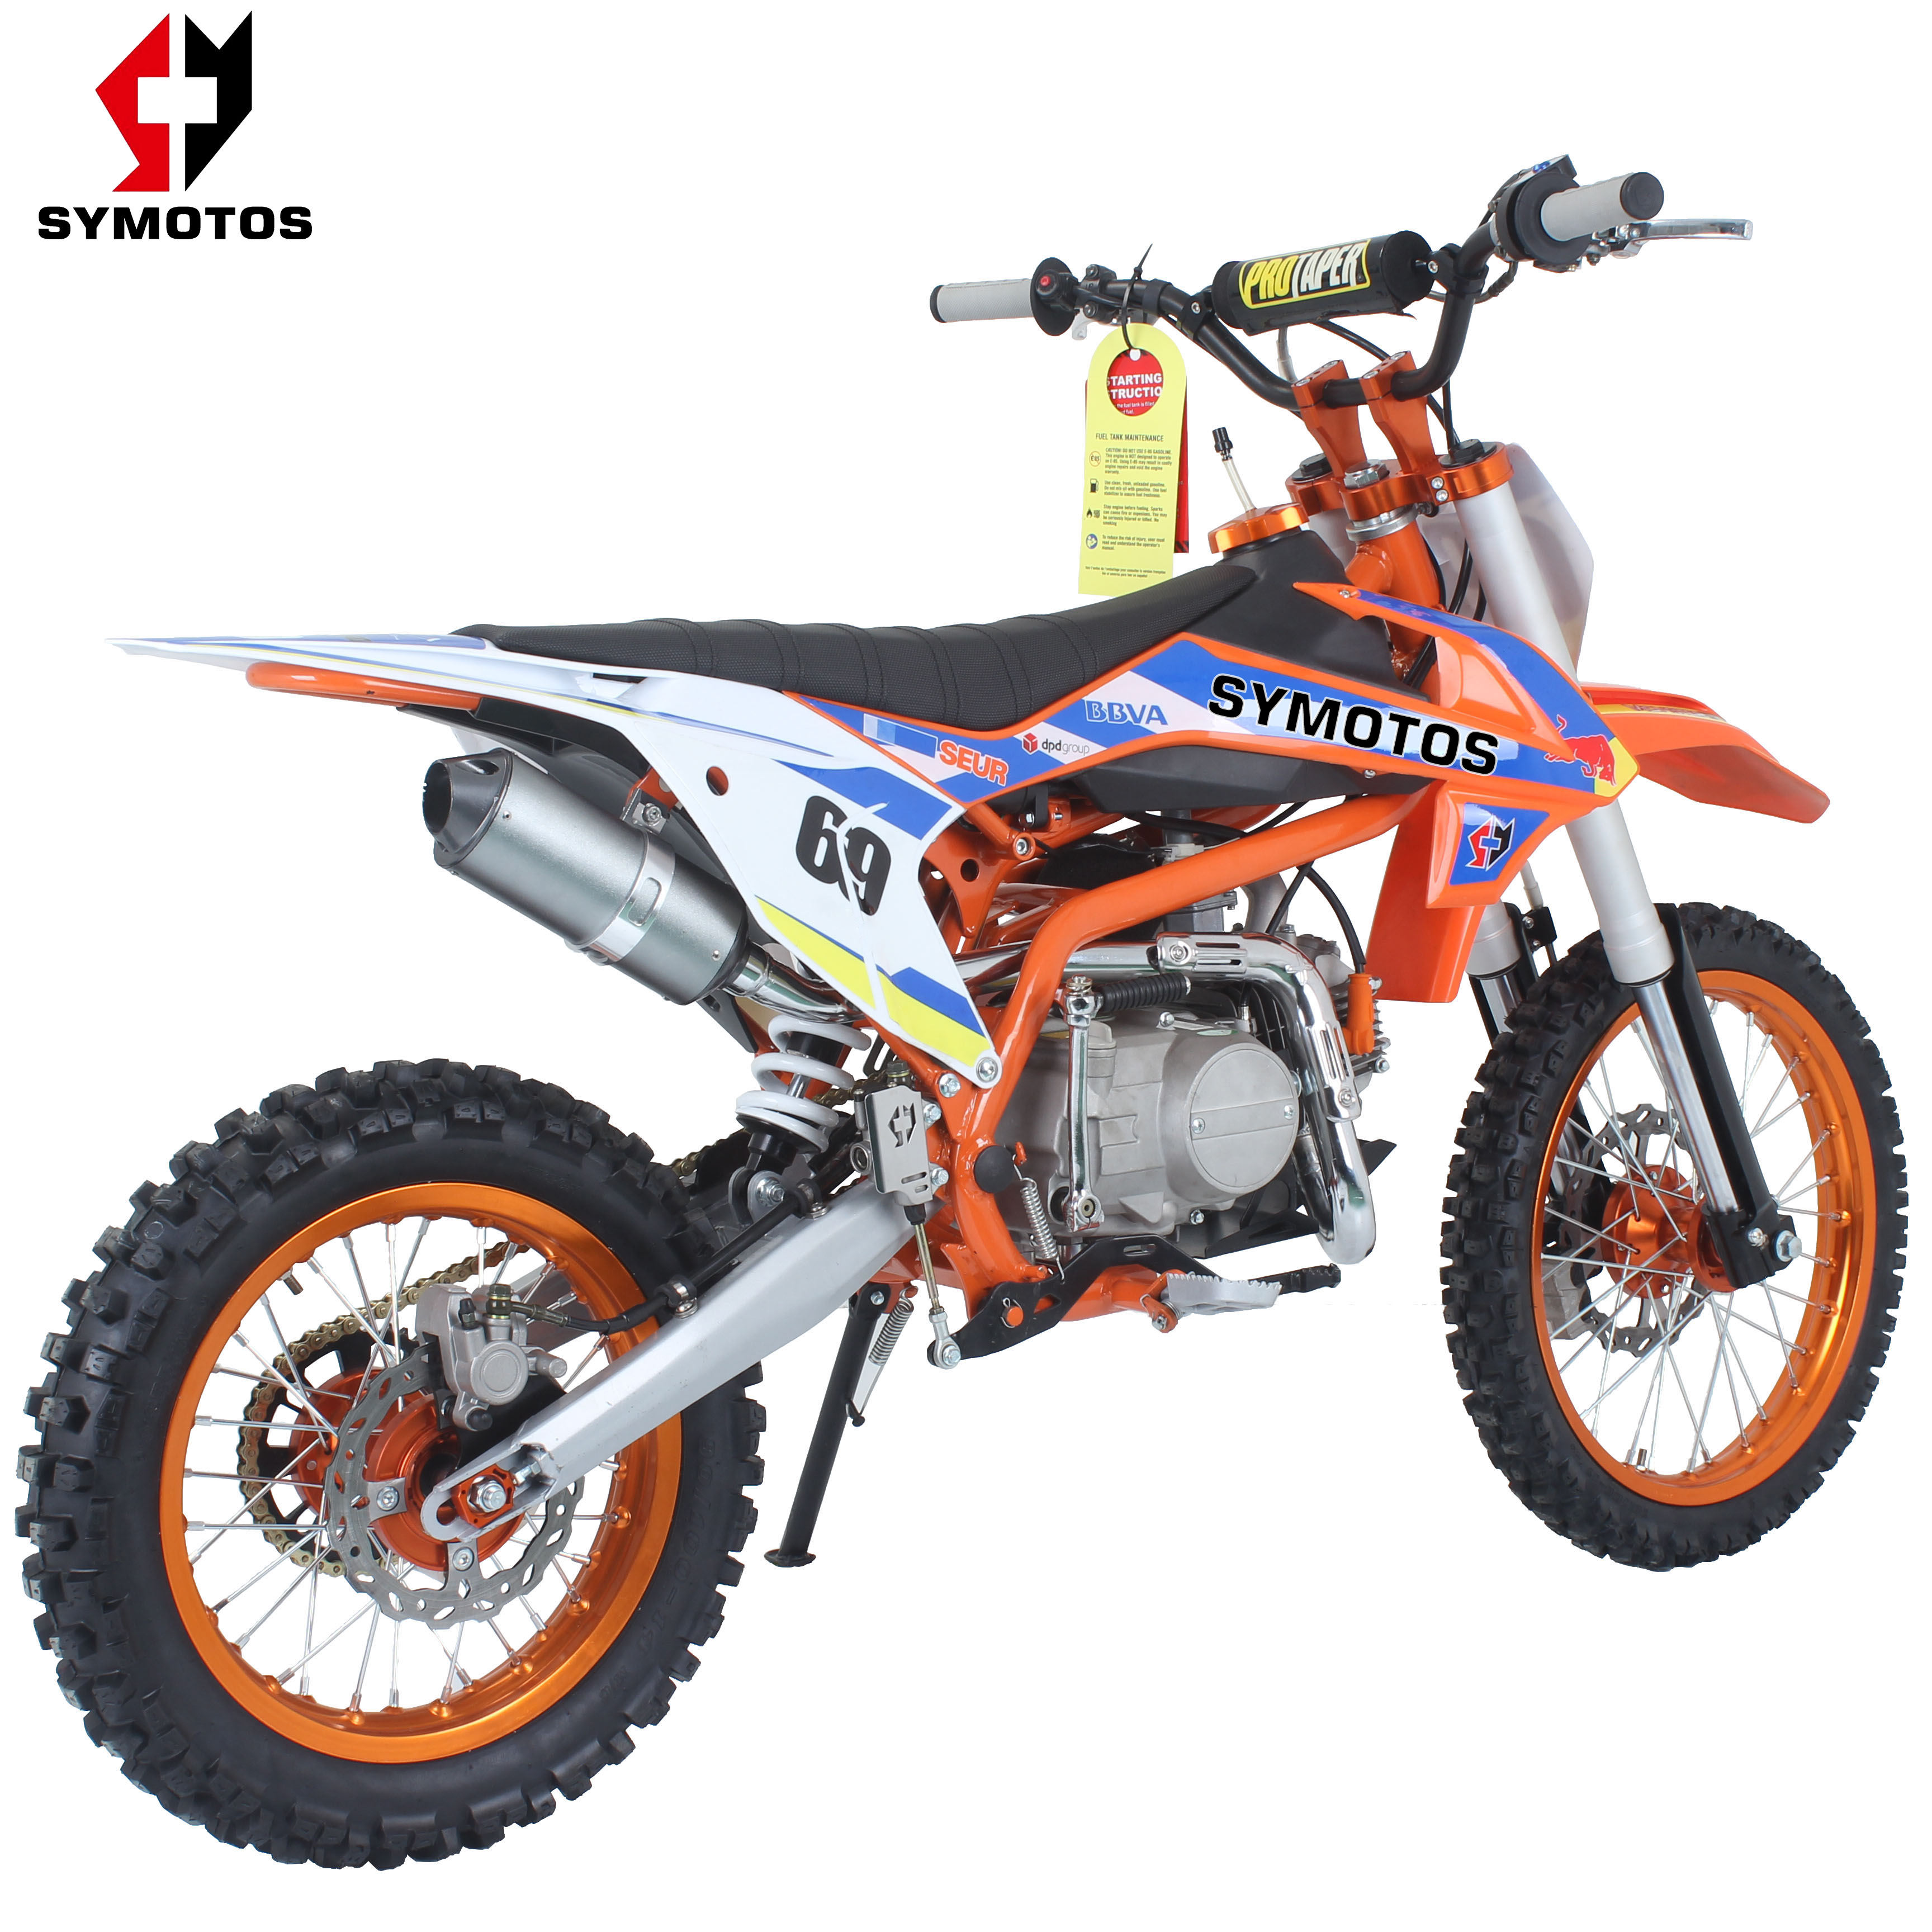 Pitbike 125cc 150cc 140cc Dirt <span class=keywords><strong>Pit</strong></span> Bike Off Road Racing Motorrad CE 17/14